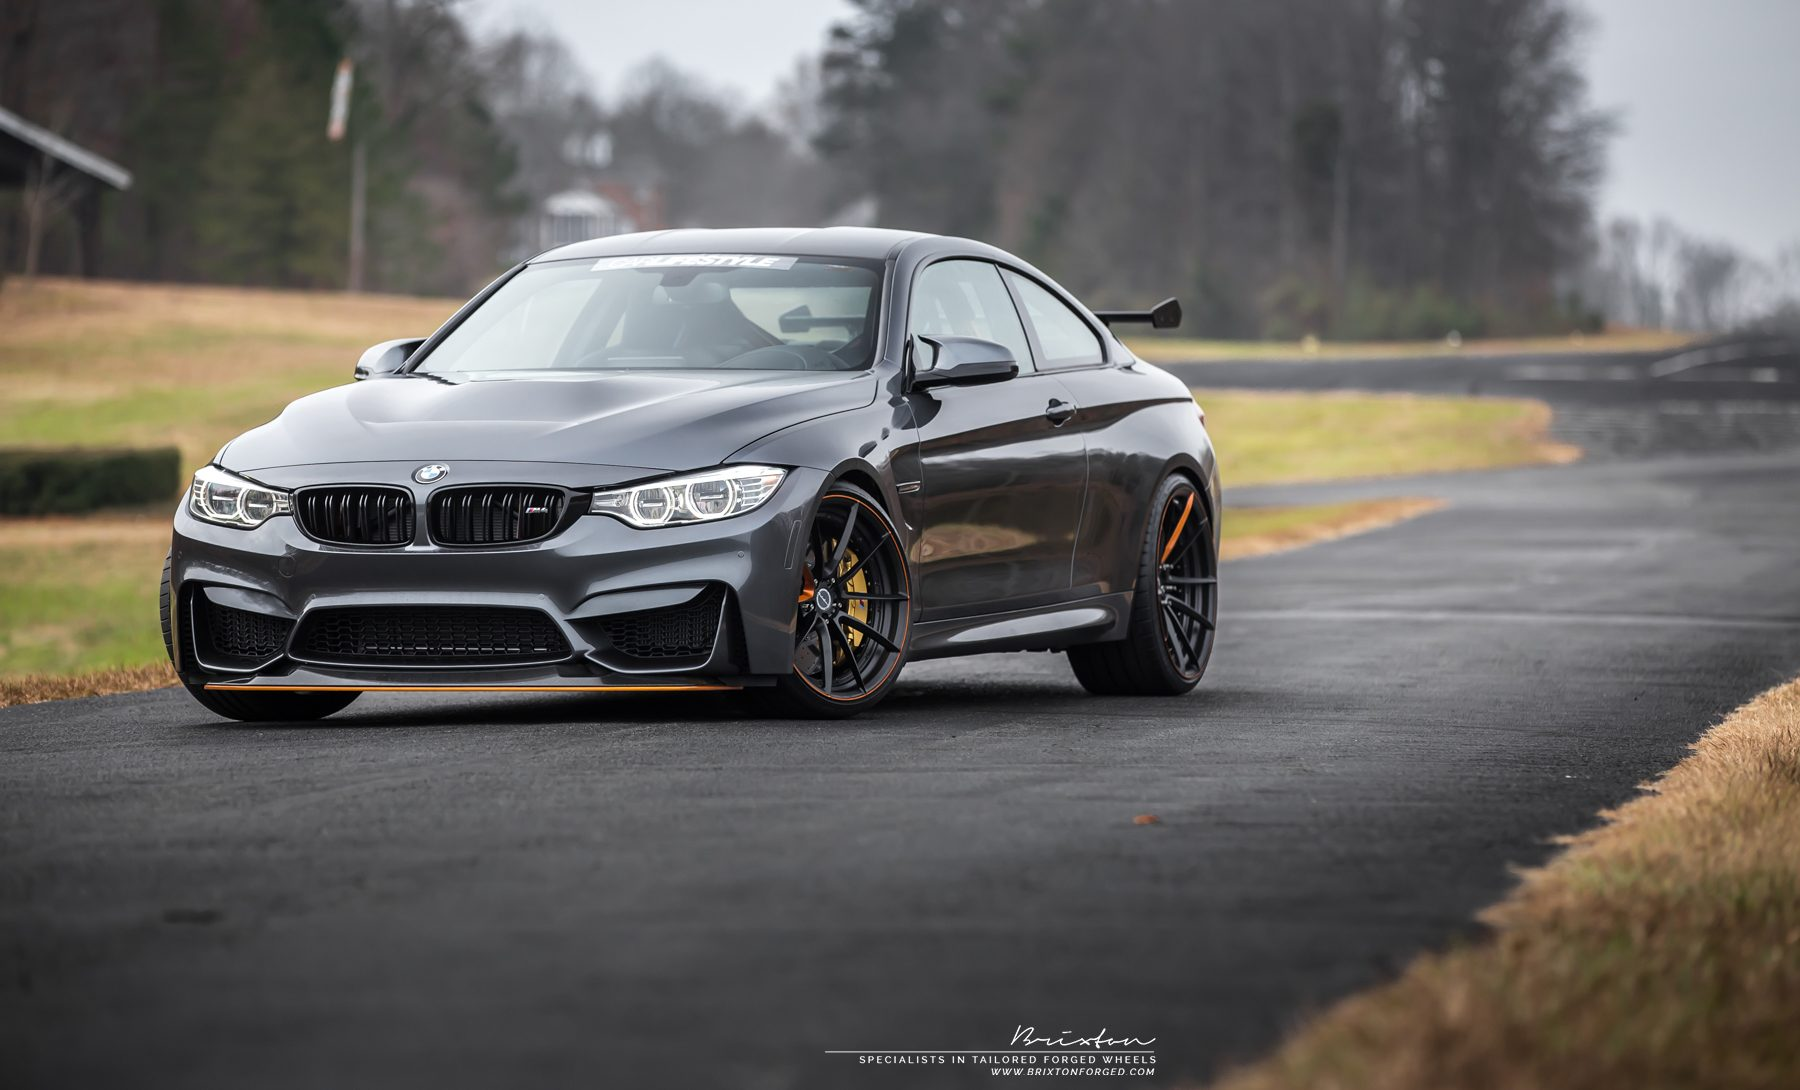 black-bmw-m4-gts-acid-orange-brixton-forged-wr3-duo-series-2-piece-forged-wheels-concave-satin-black-12-1800x1090.jpg